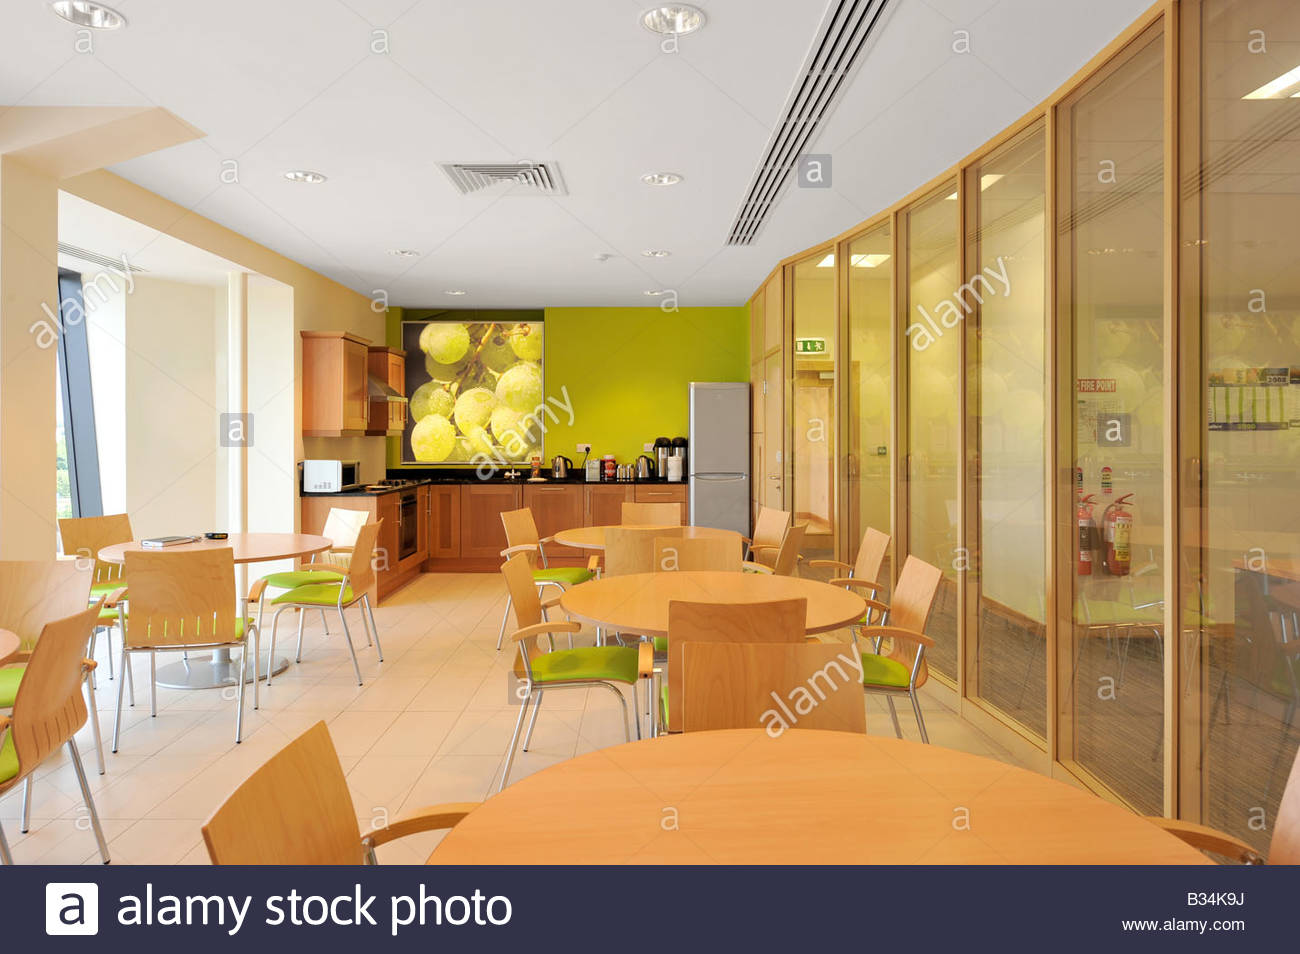 Kitchen Office Office Interior Kitchen Staff Room Stock Photo Royalty Free Image